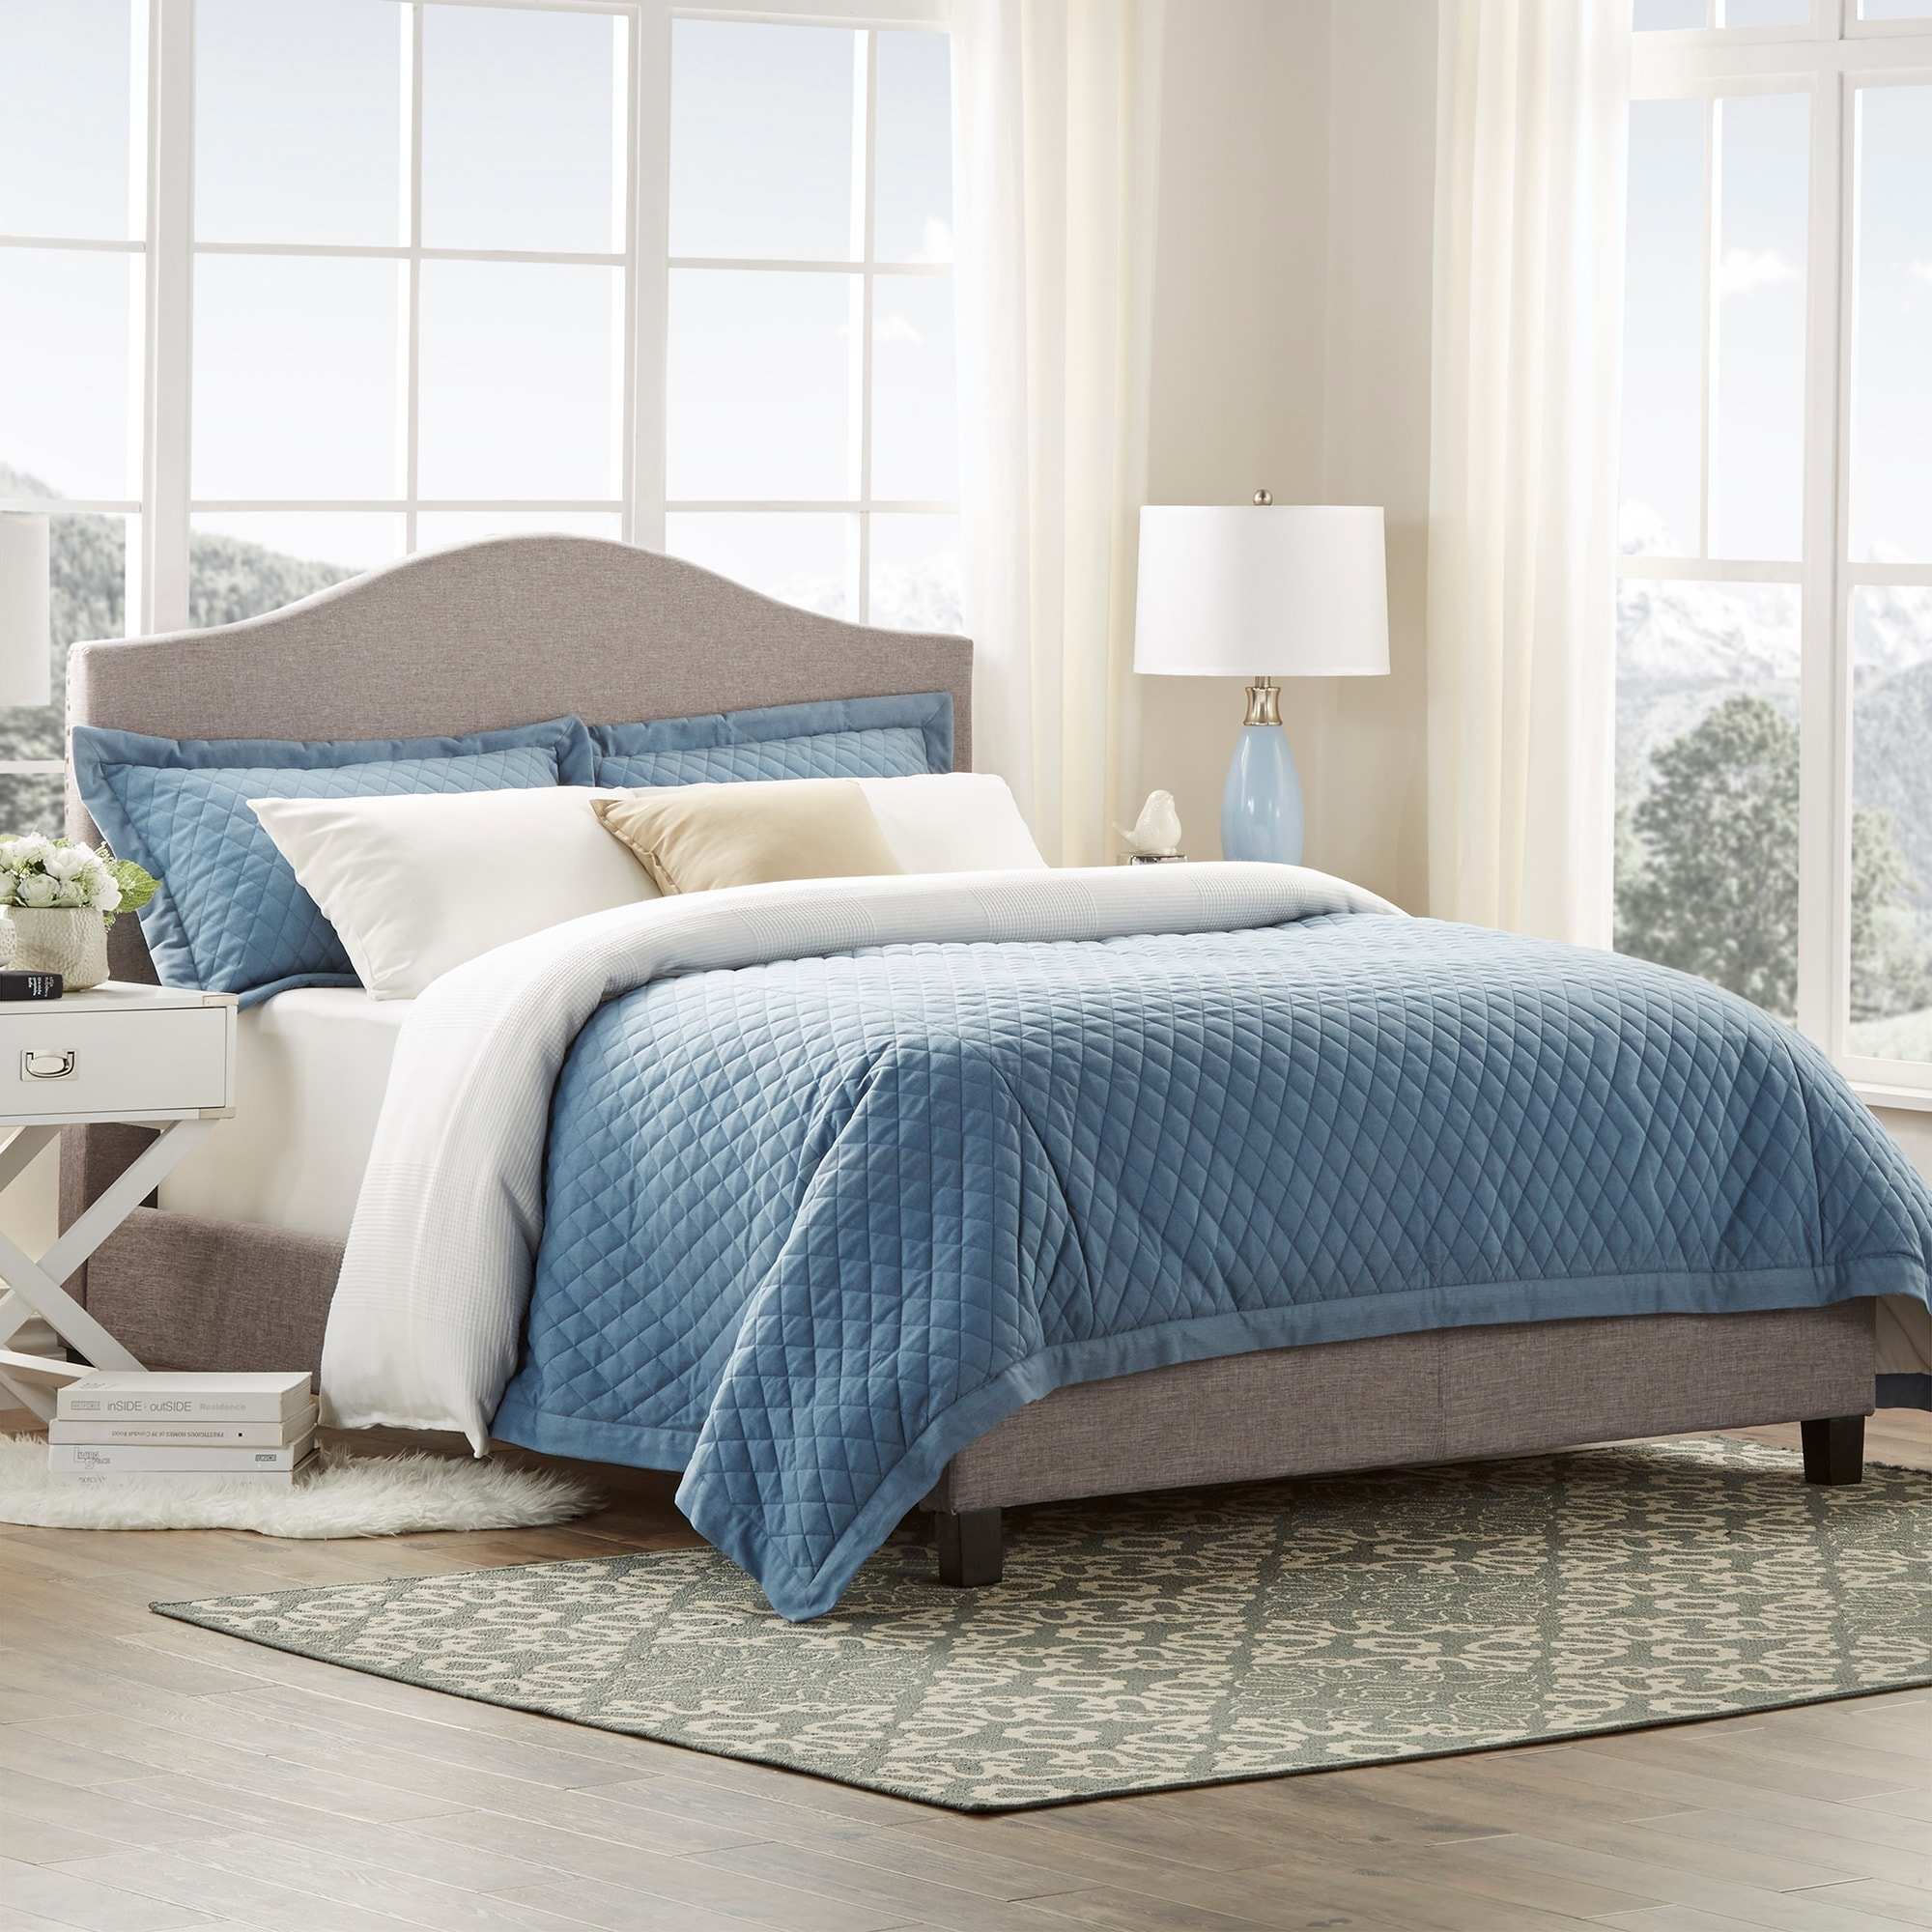 Blanchard Nailheads Camelback Beige Linen Upholstered King-size Bed by  iNSPIRE Q Bold - Free Shipping Today - Overstock.com - 17150380